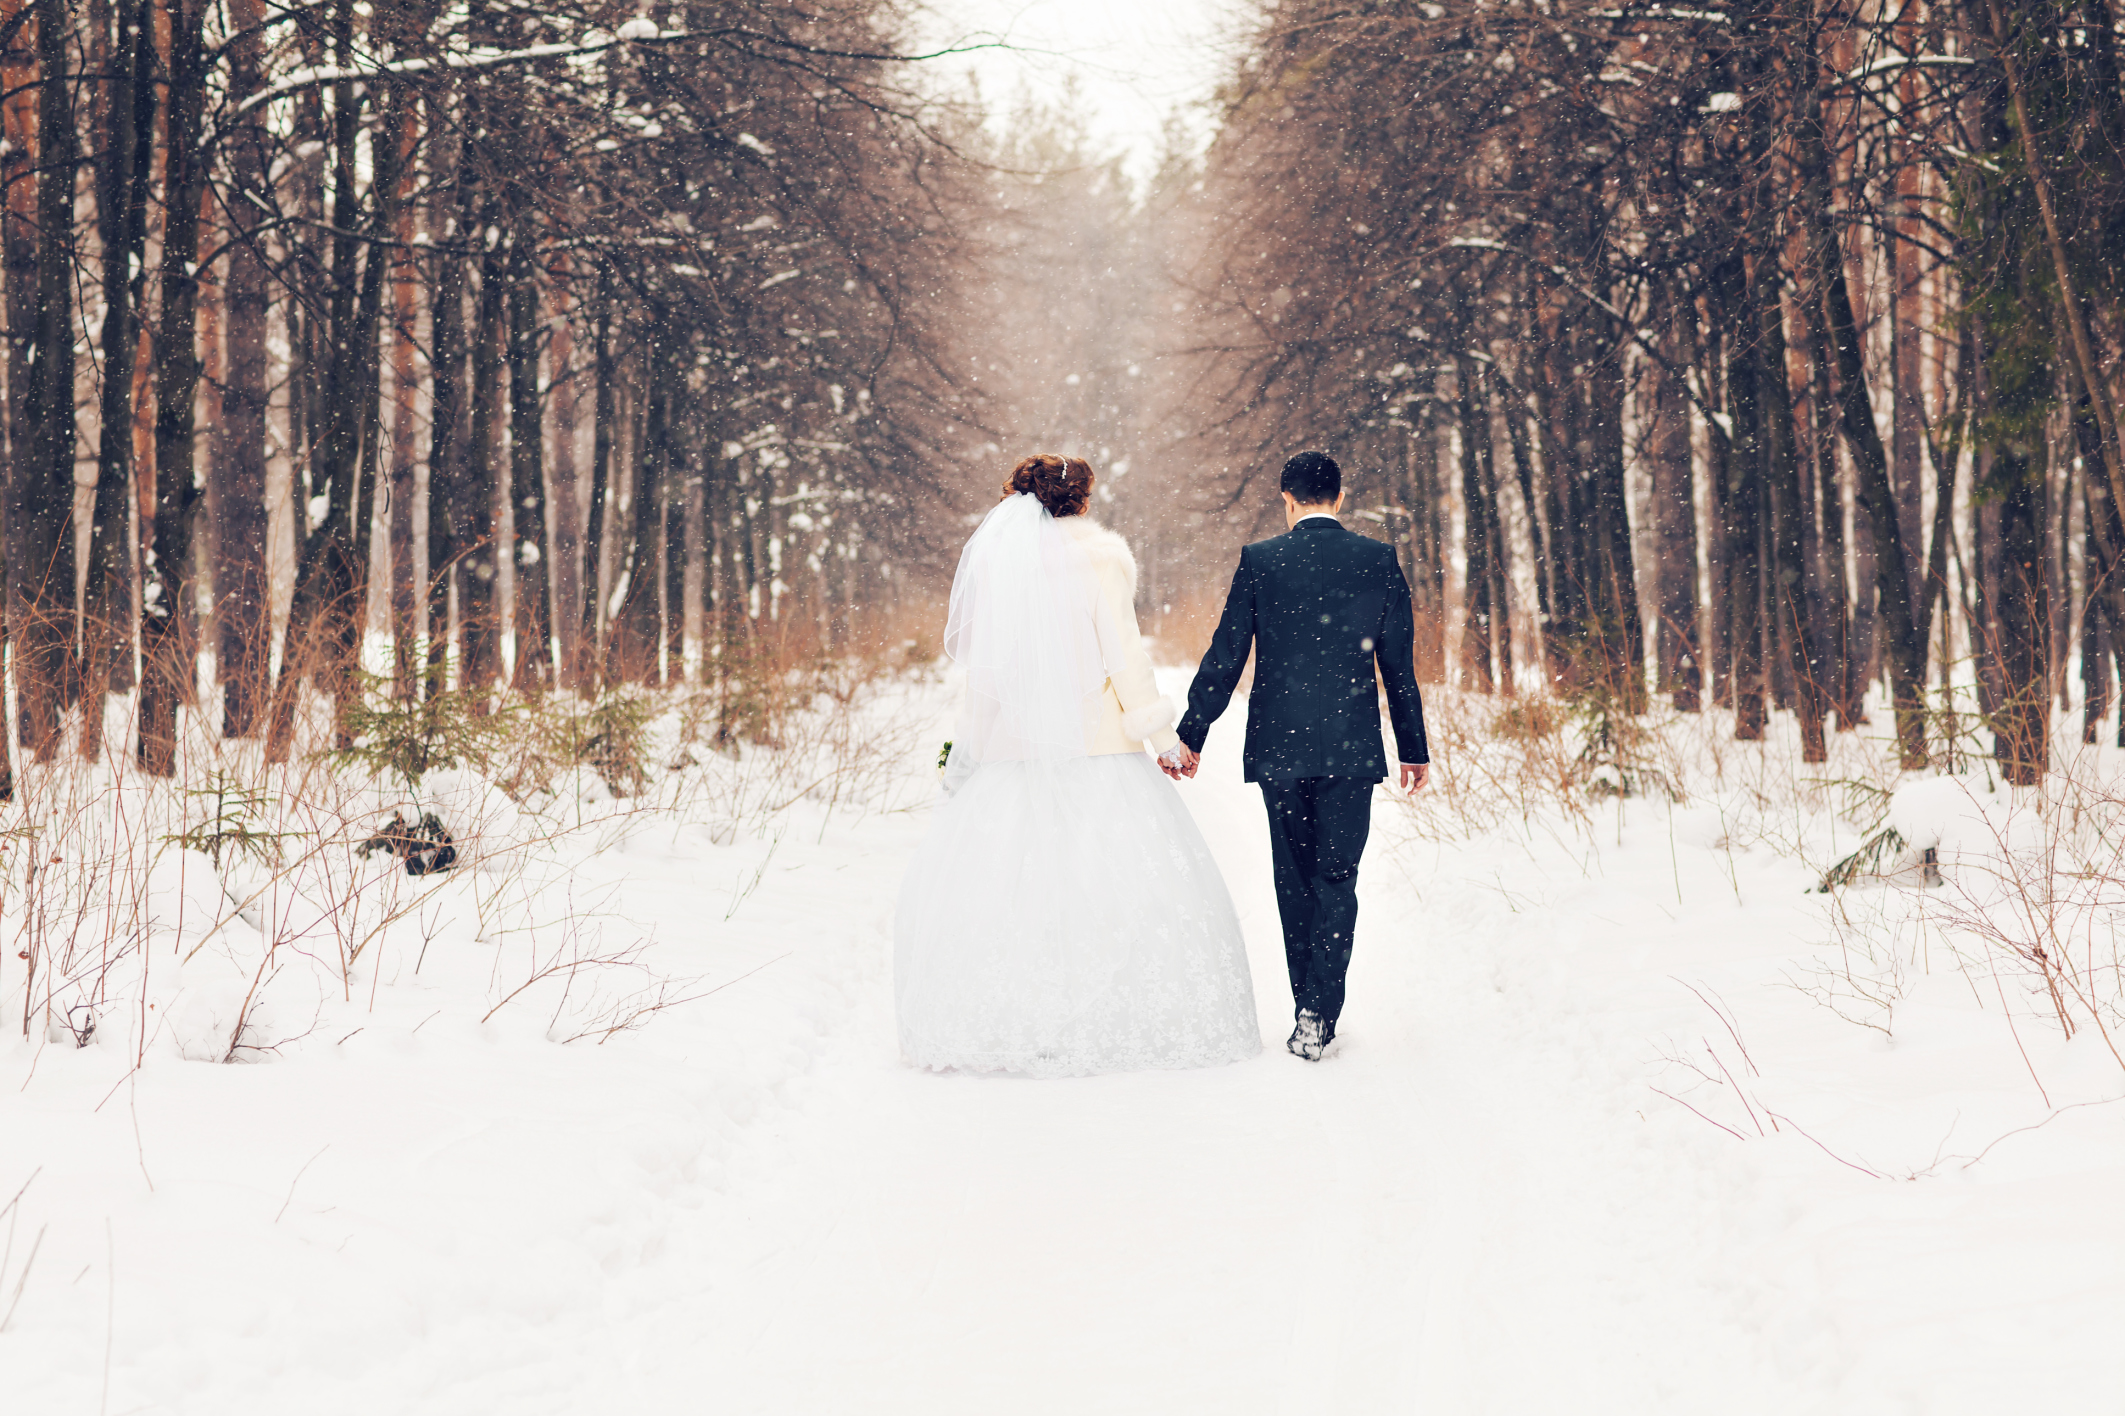 7 Reasons It Makes Sense to Host a New Year's Eve Wedding